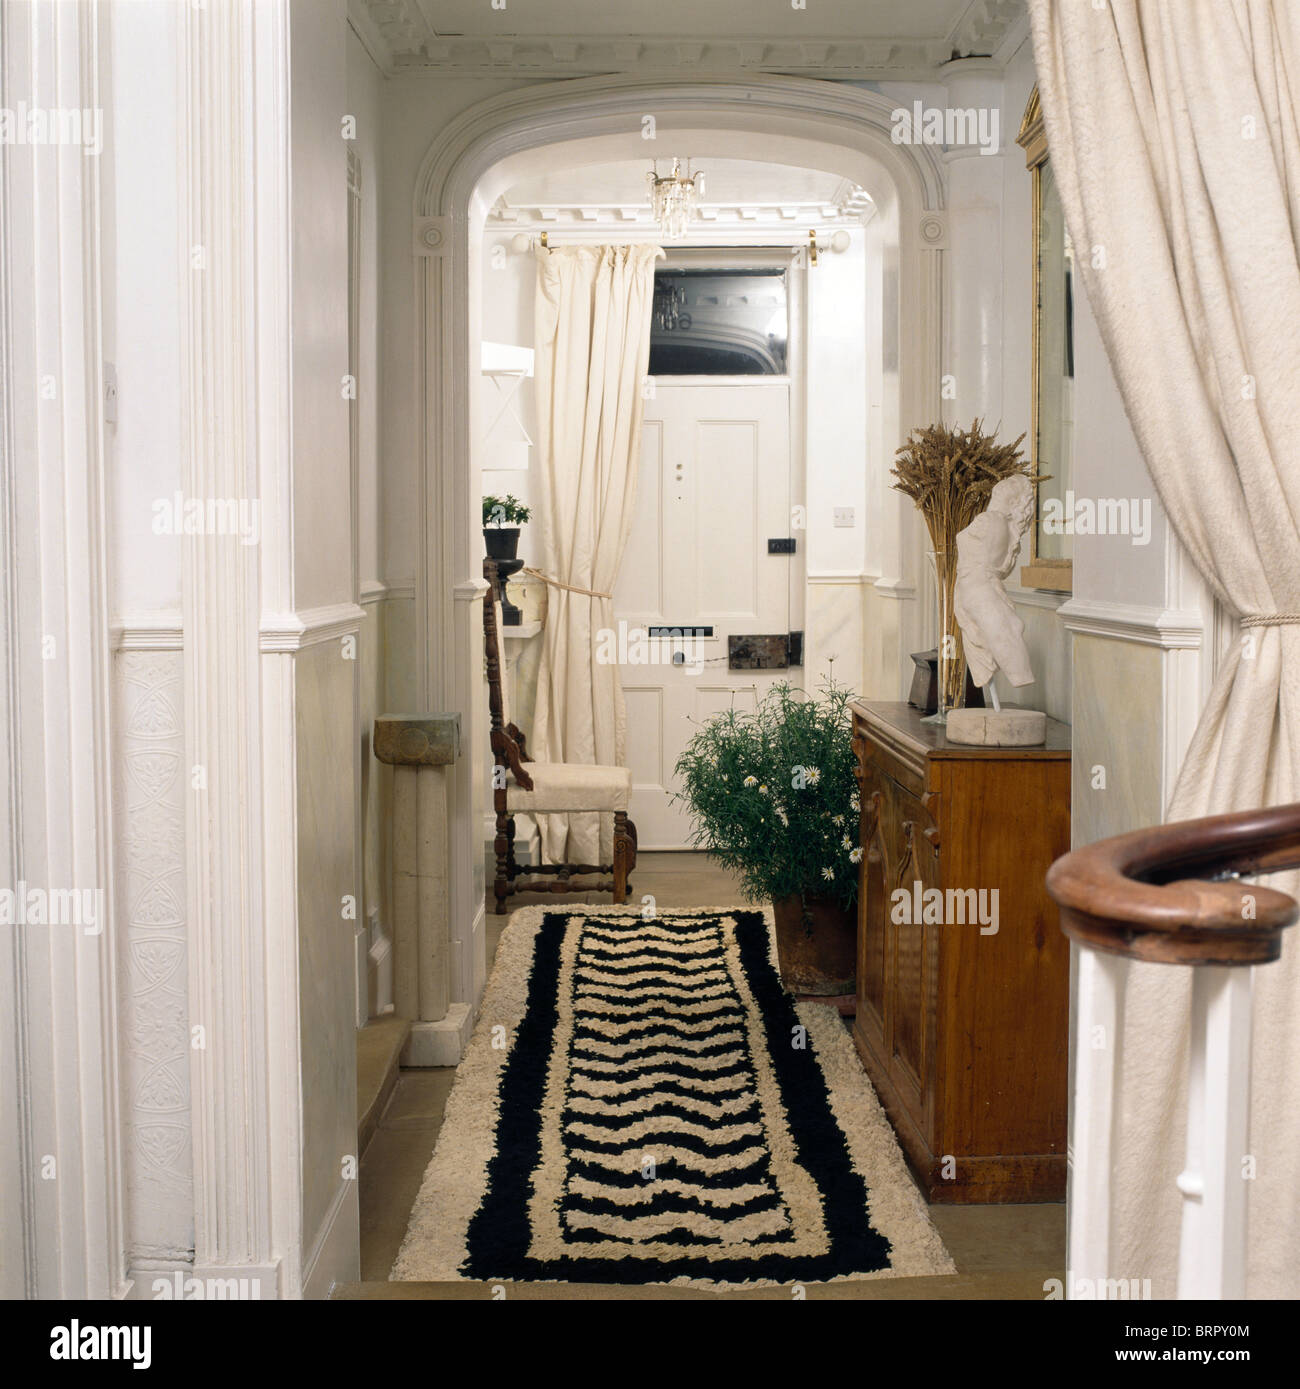 Black White Rug On Floor In Narrow Hall With White Curtains And Stock Photo Alamy